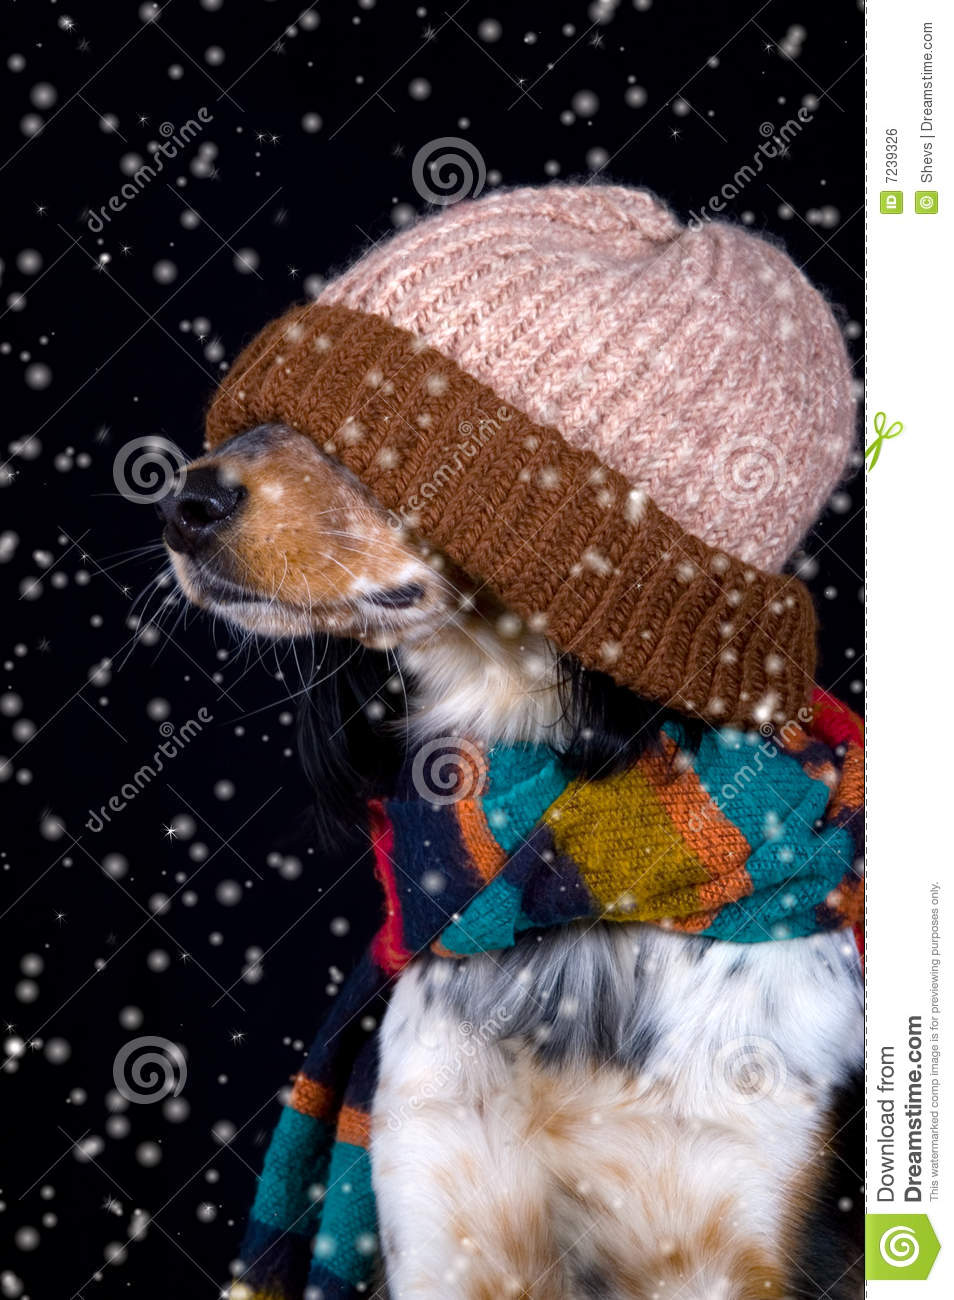 Dog With Hat In Snow Royalty Free Stock Image - Image: 7239326